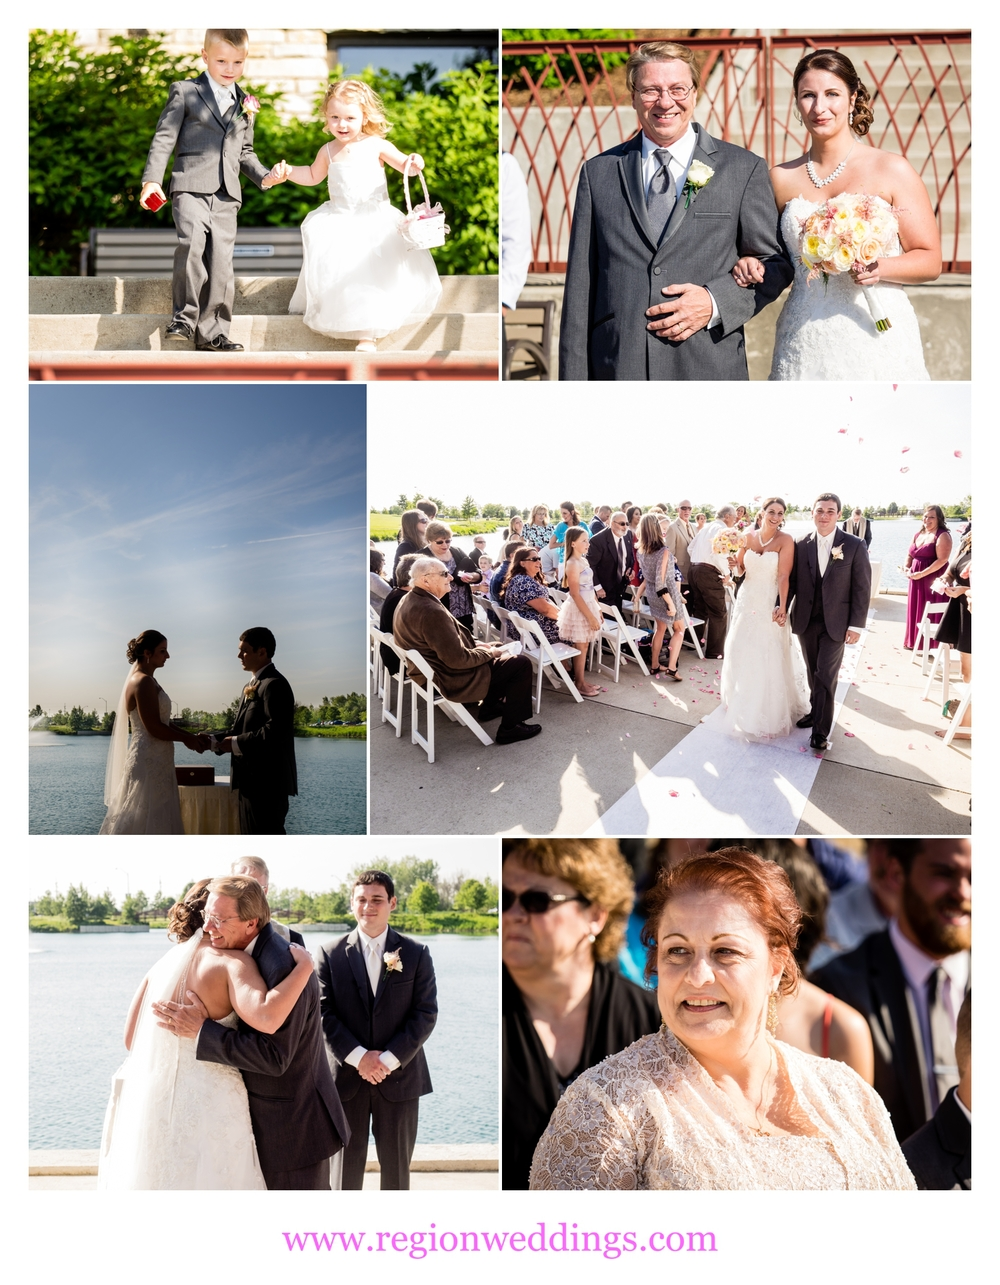 Summer wedding at Centennial Park.